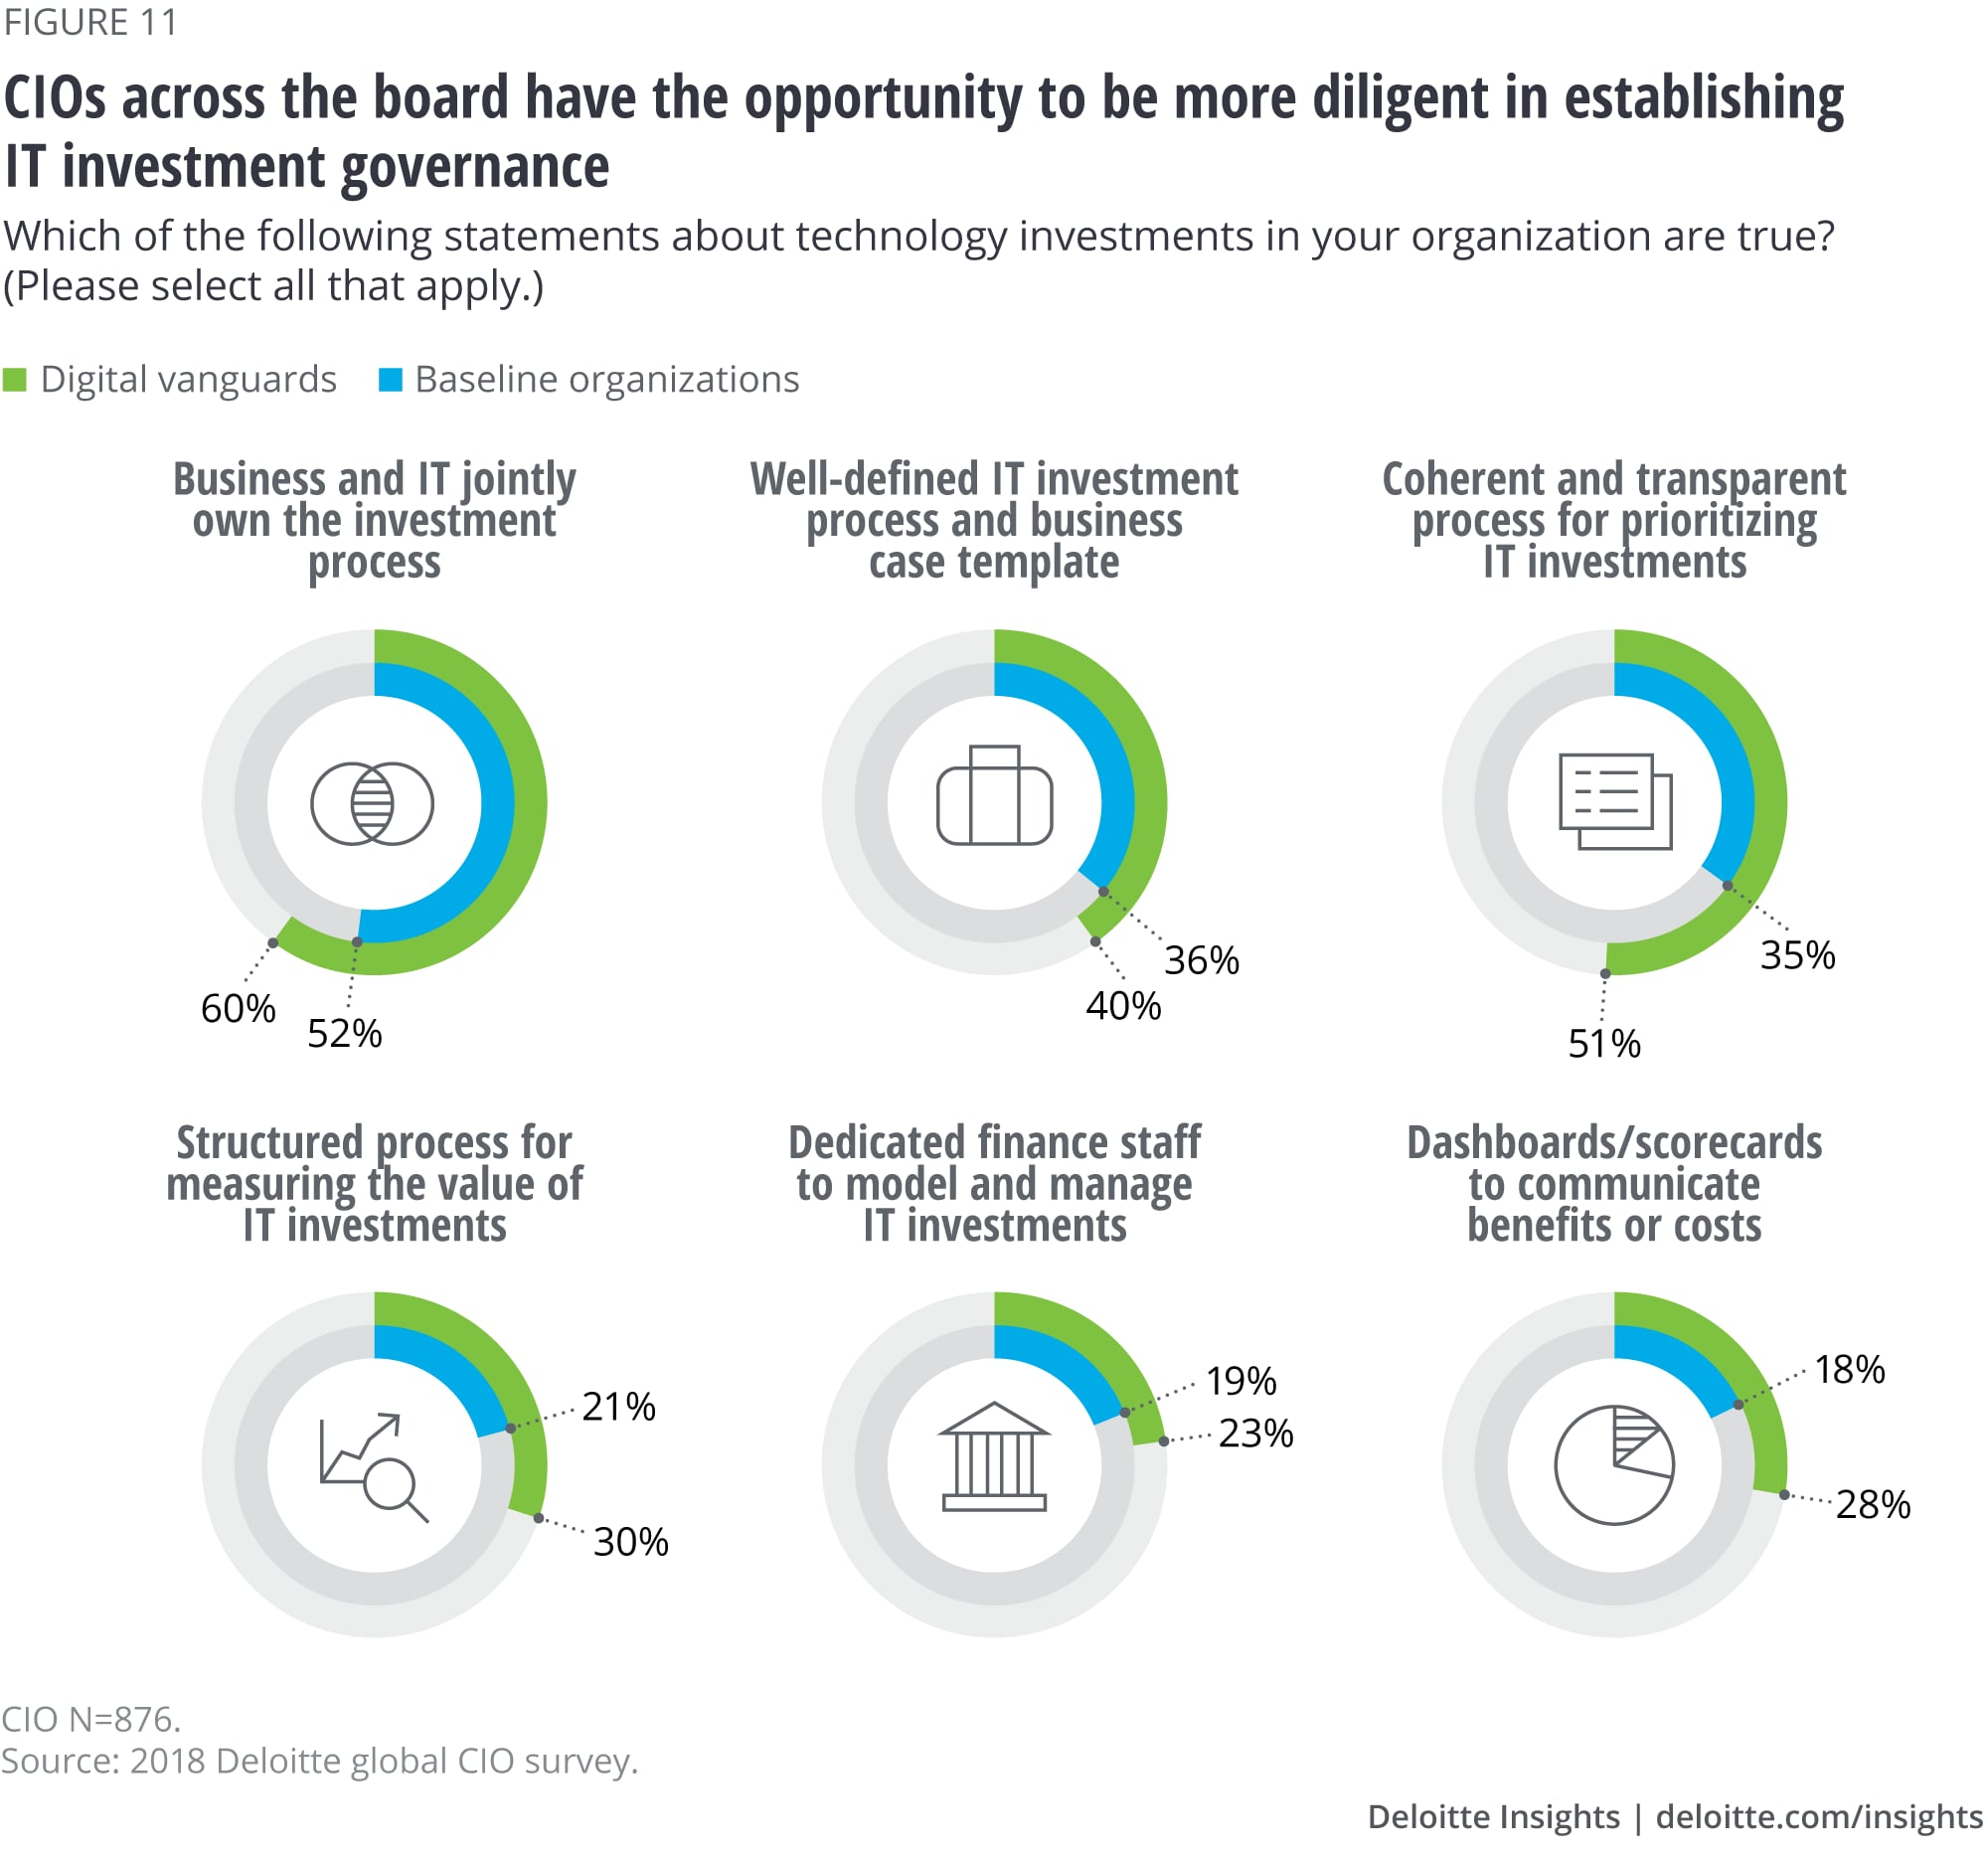 CIOs across the board have the opportunity to be more diligent in establishing IT investment governance